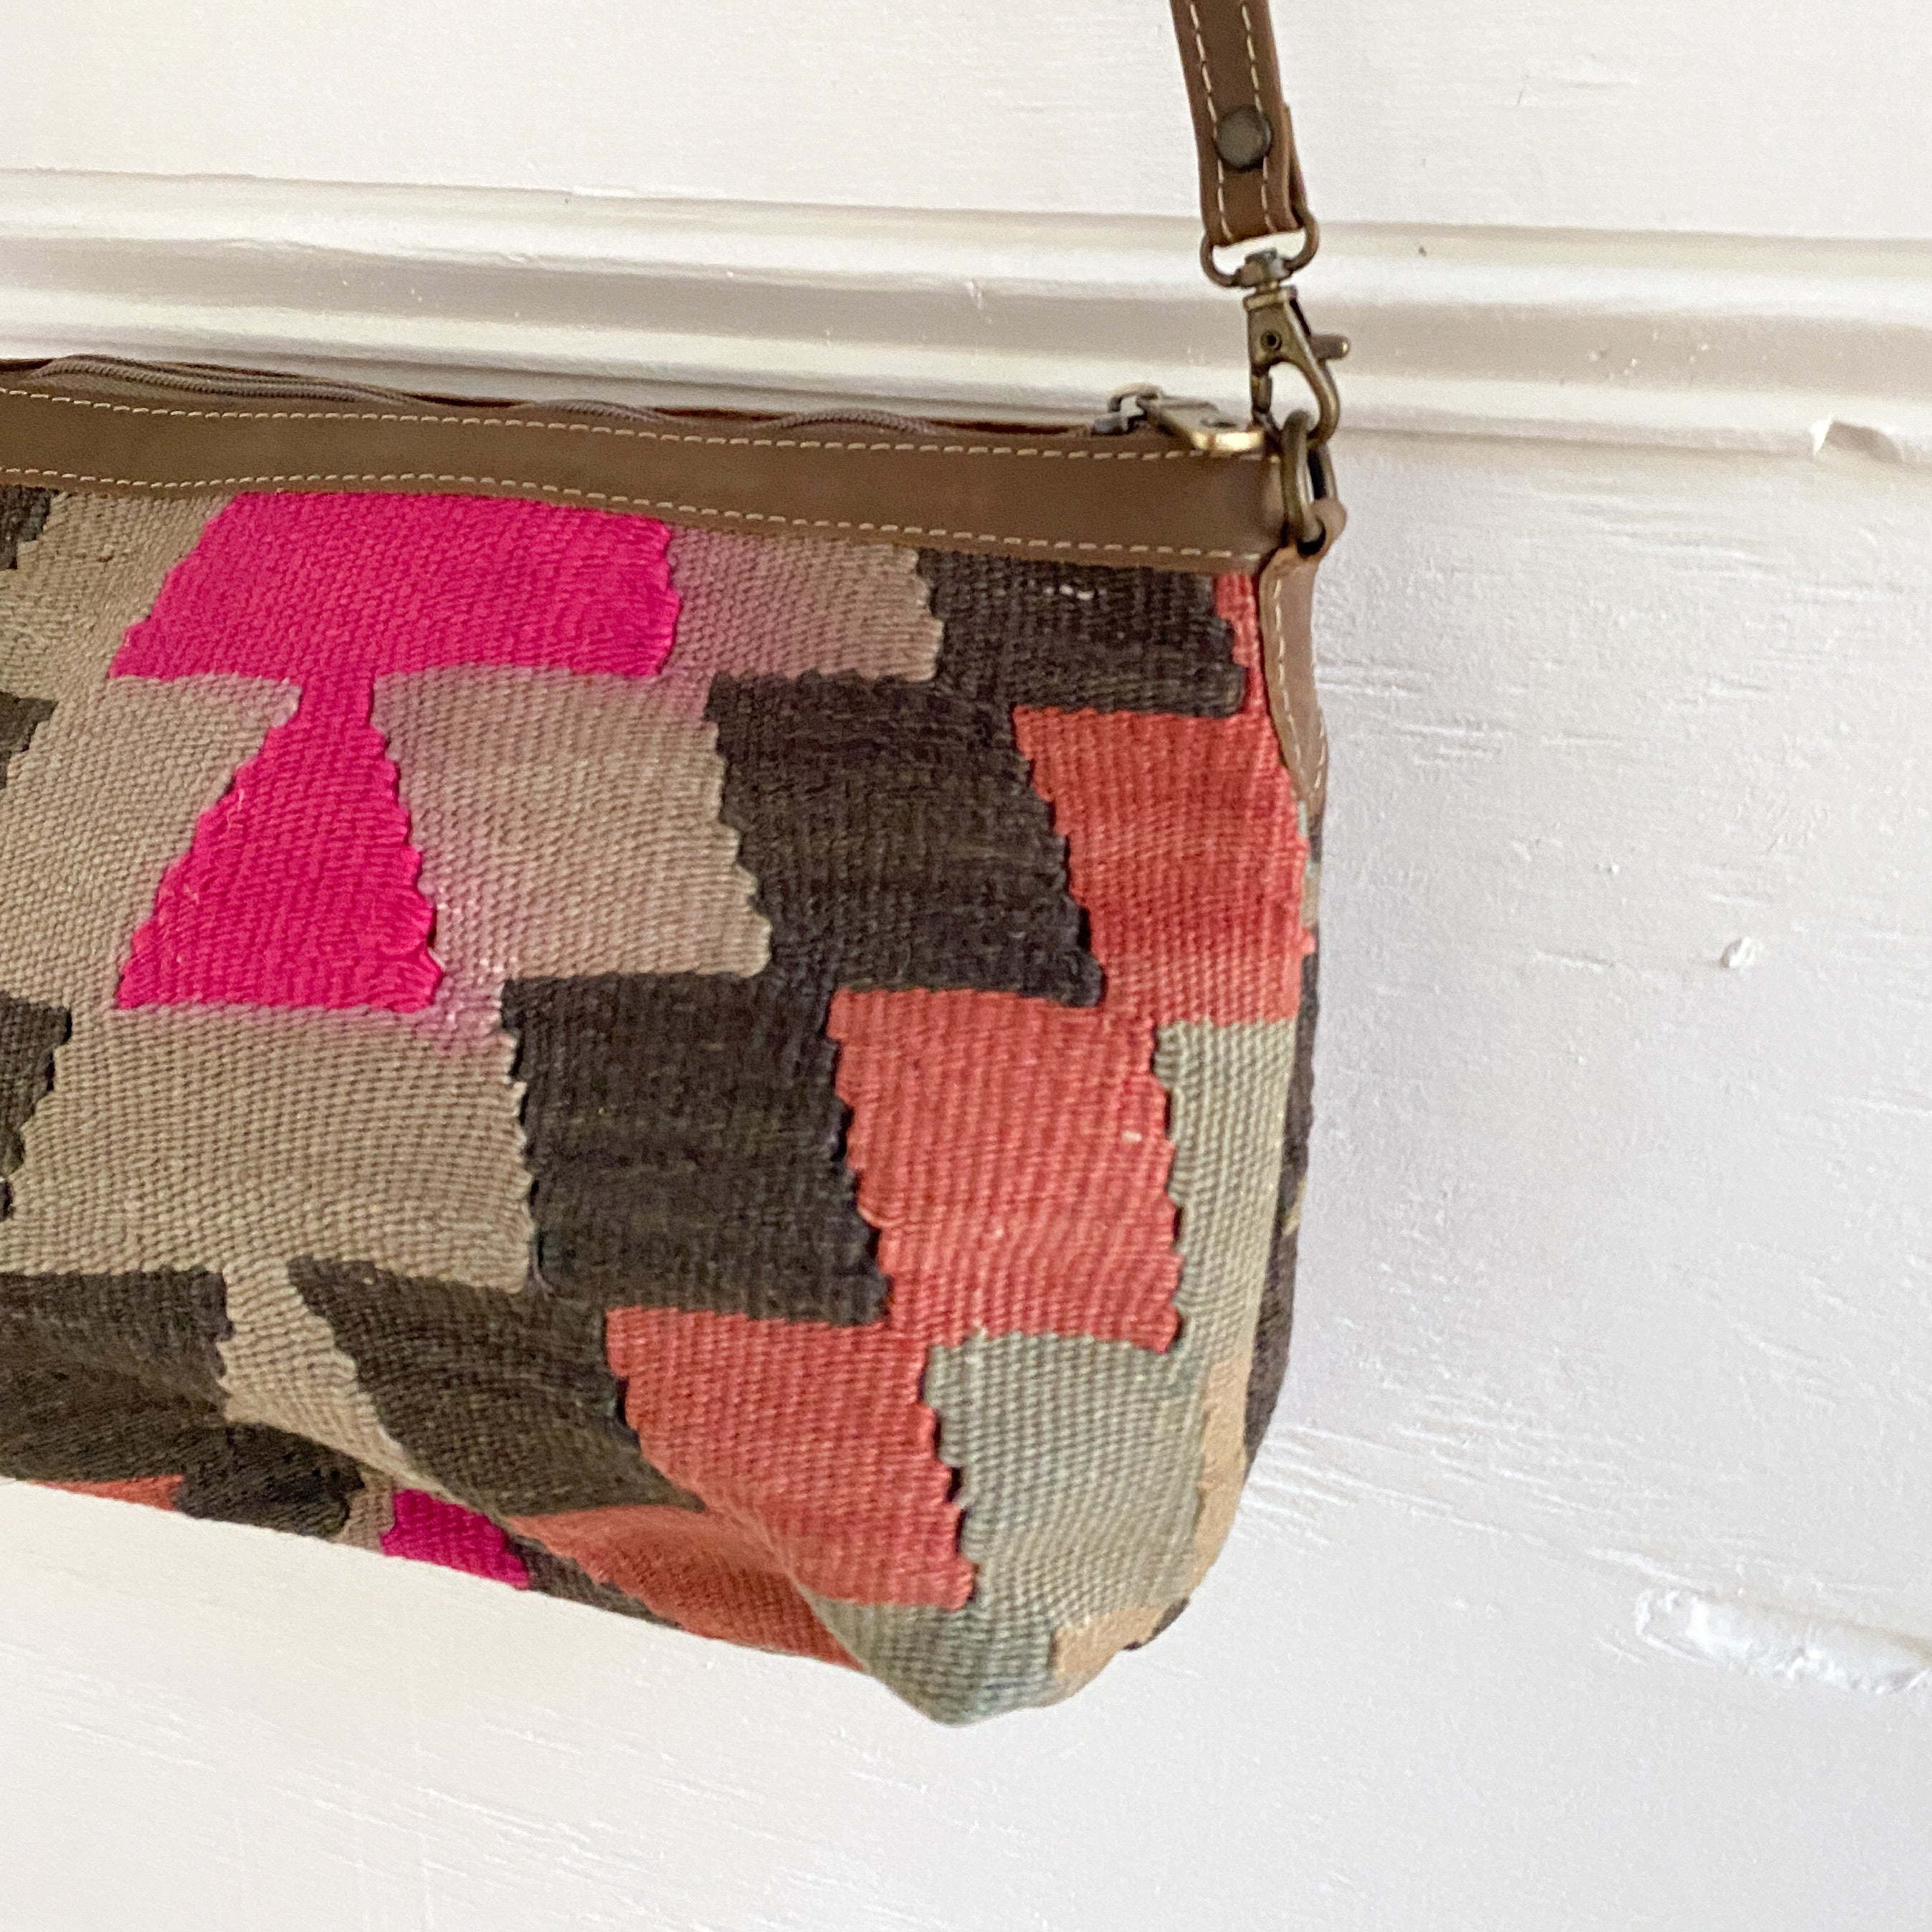 Kilim & Leather Crossbody / Pocketbook #30